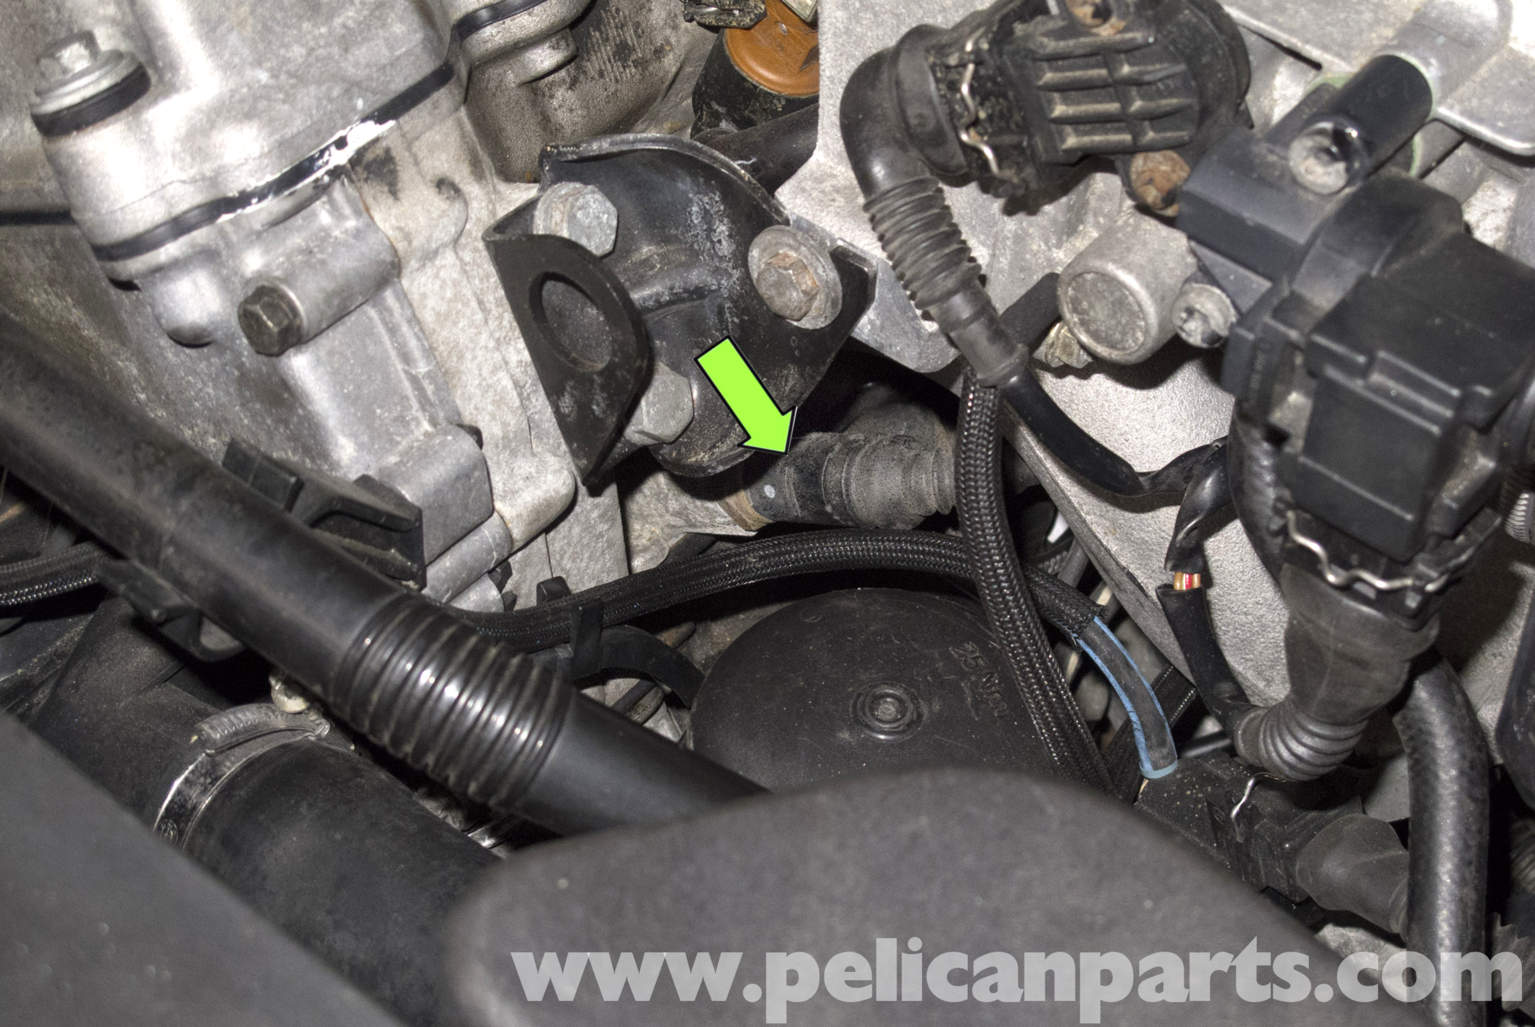 2003 nissan pathfinder engine diagram toyota celica wiring 1993 bmw z3 coolant temperature sensor testing and replacement | 1996-2002 pelican parts diy ...